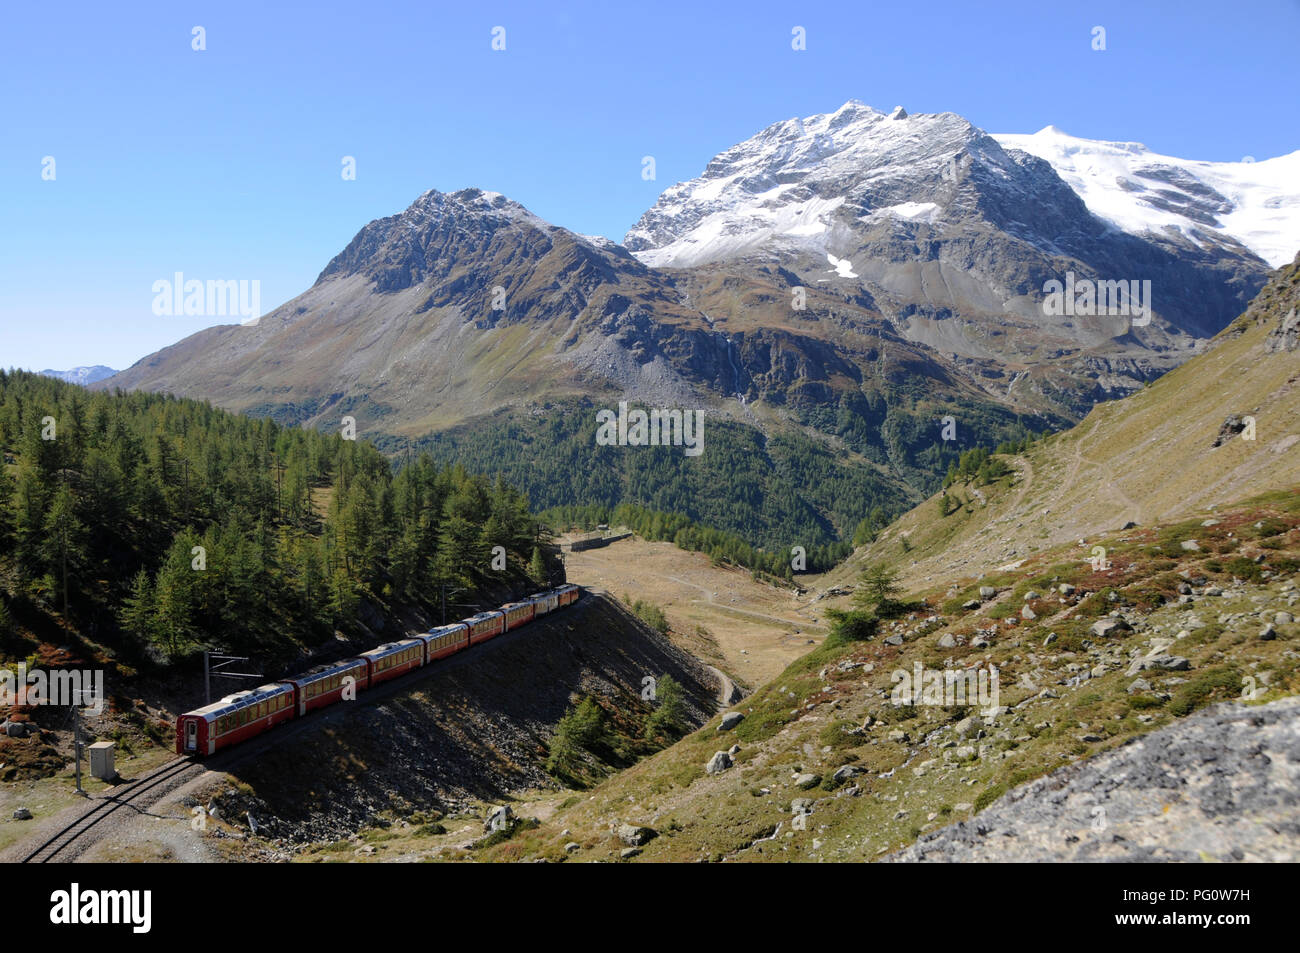 Swiss Alps: The Rhätische Railway up in the Bernina mountains on it's way from Pontresina to Alp Grüm and Posciavo - Stock Image